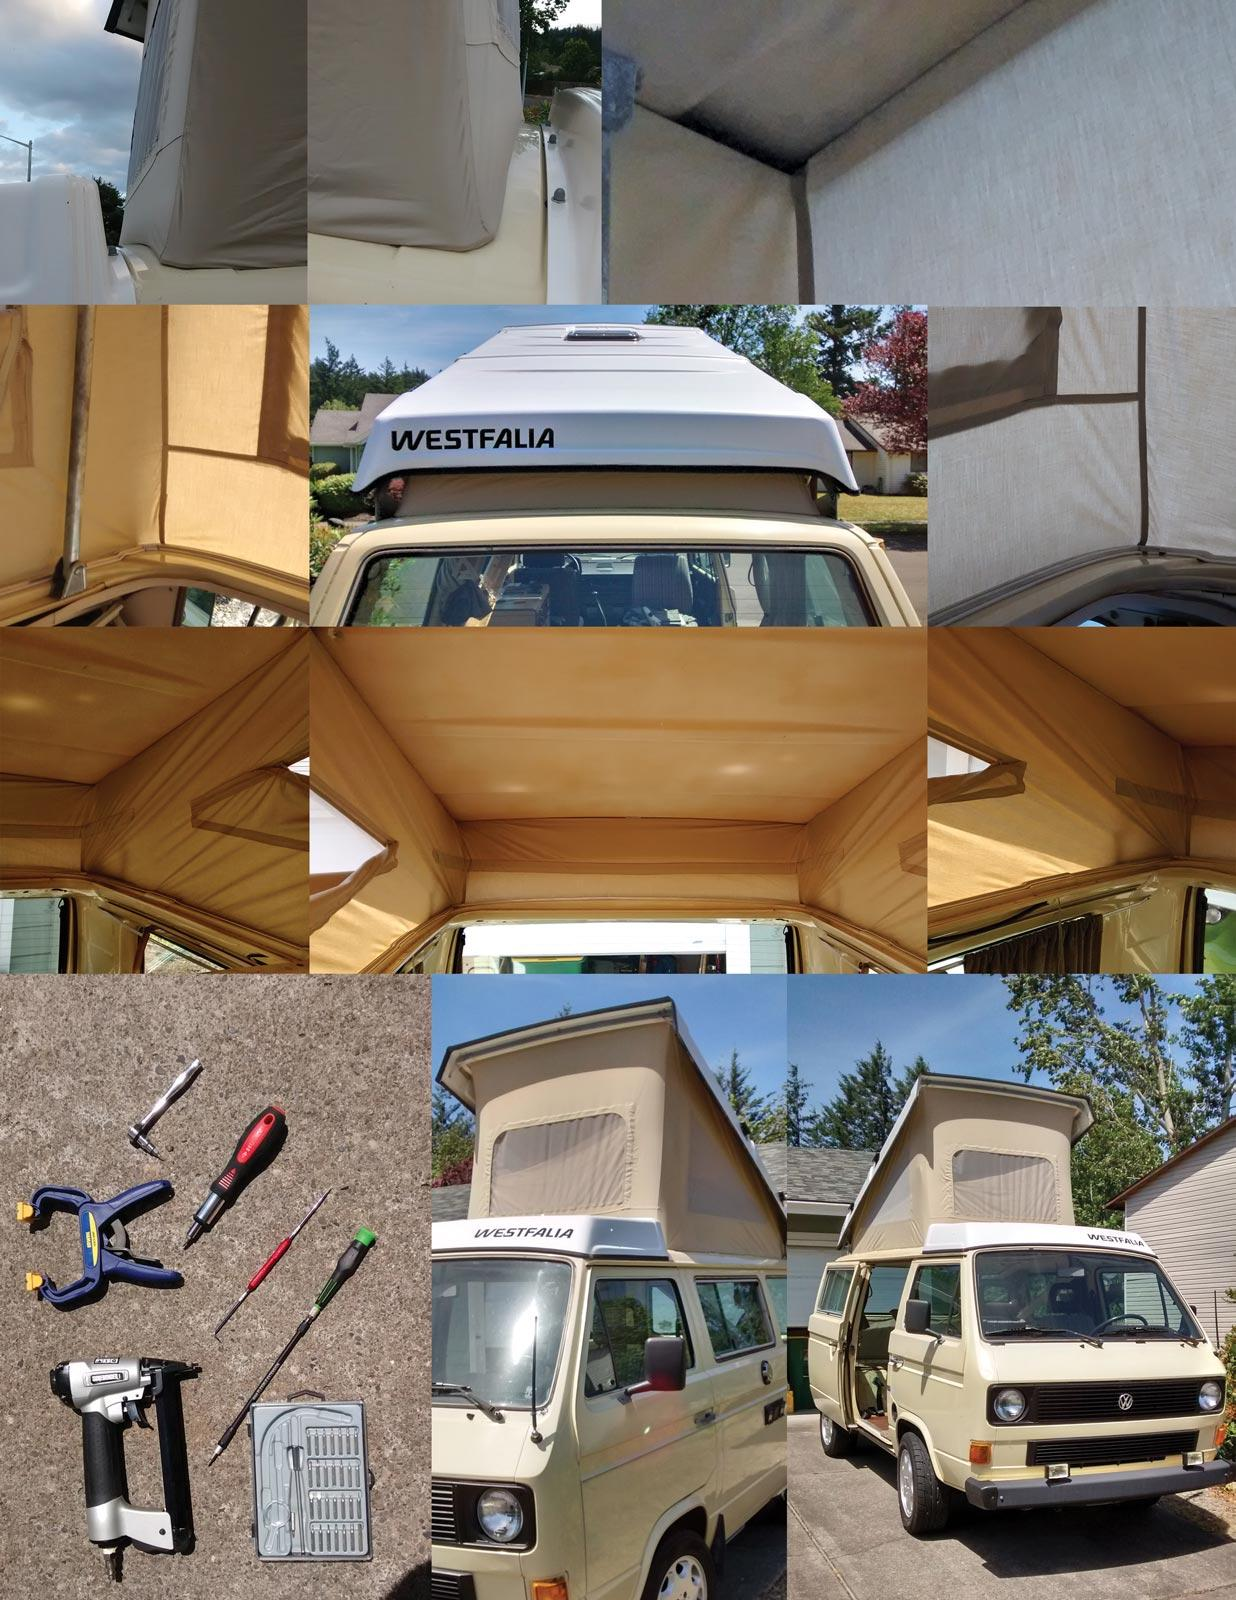 Image may have been reduced in size. Click image to view fullscreen. & TheSamba.com :: Vanagon - View topic - Staple Type Pop Top Tent ...